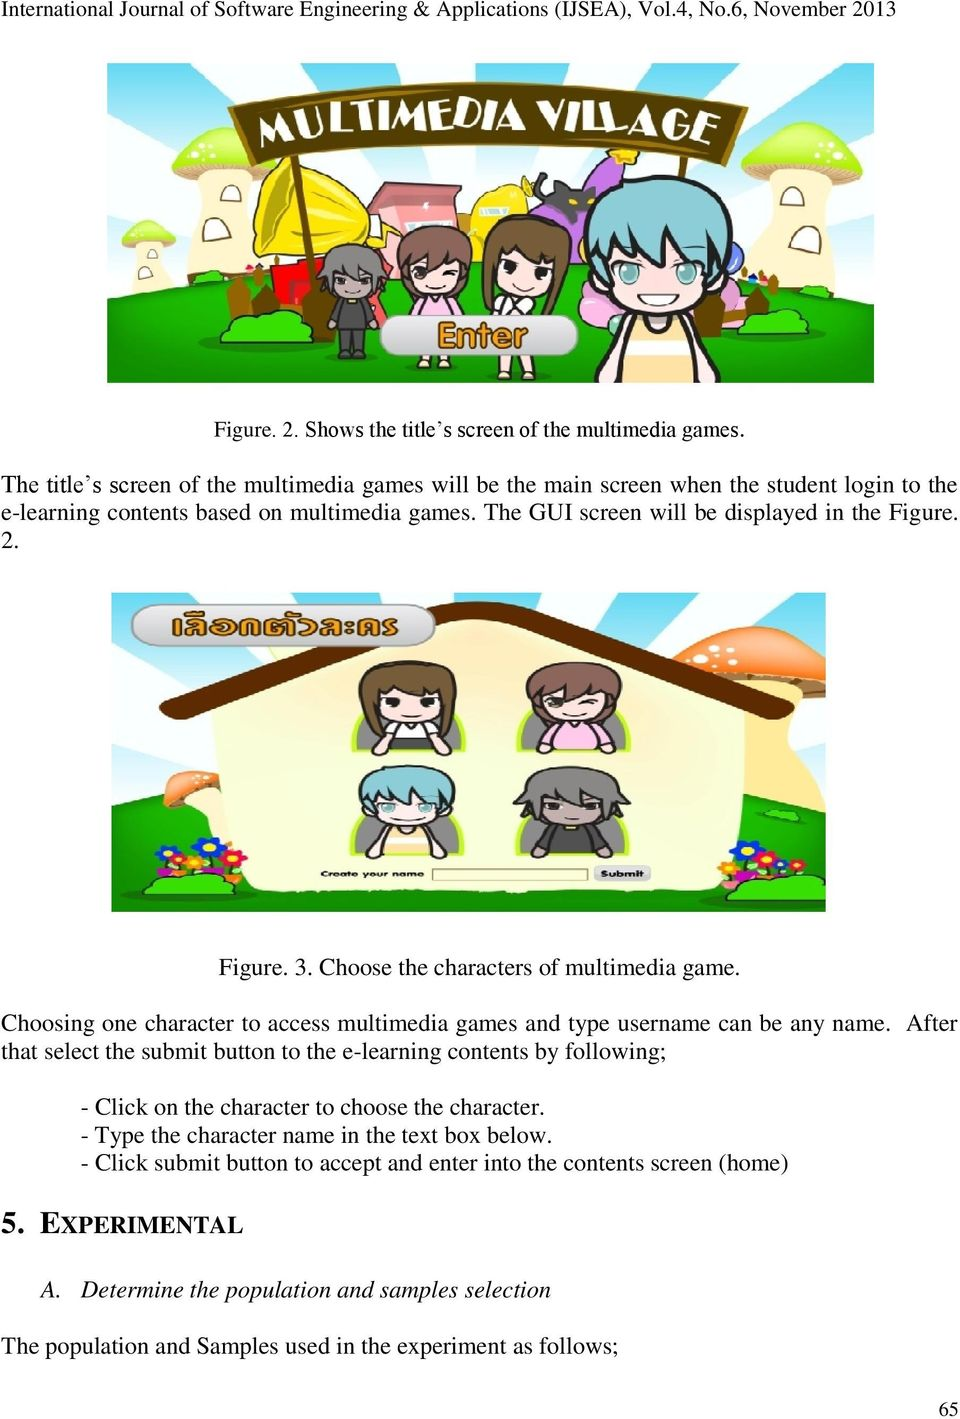 Figure. 3. Choose the characters of multimedia game. Choosing one character to access multimedia games and type username can be any name.